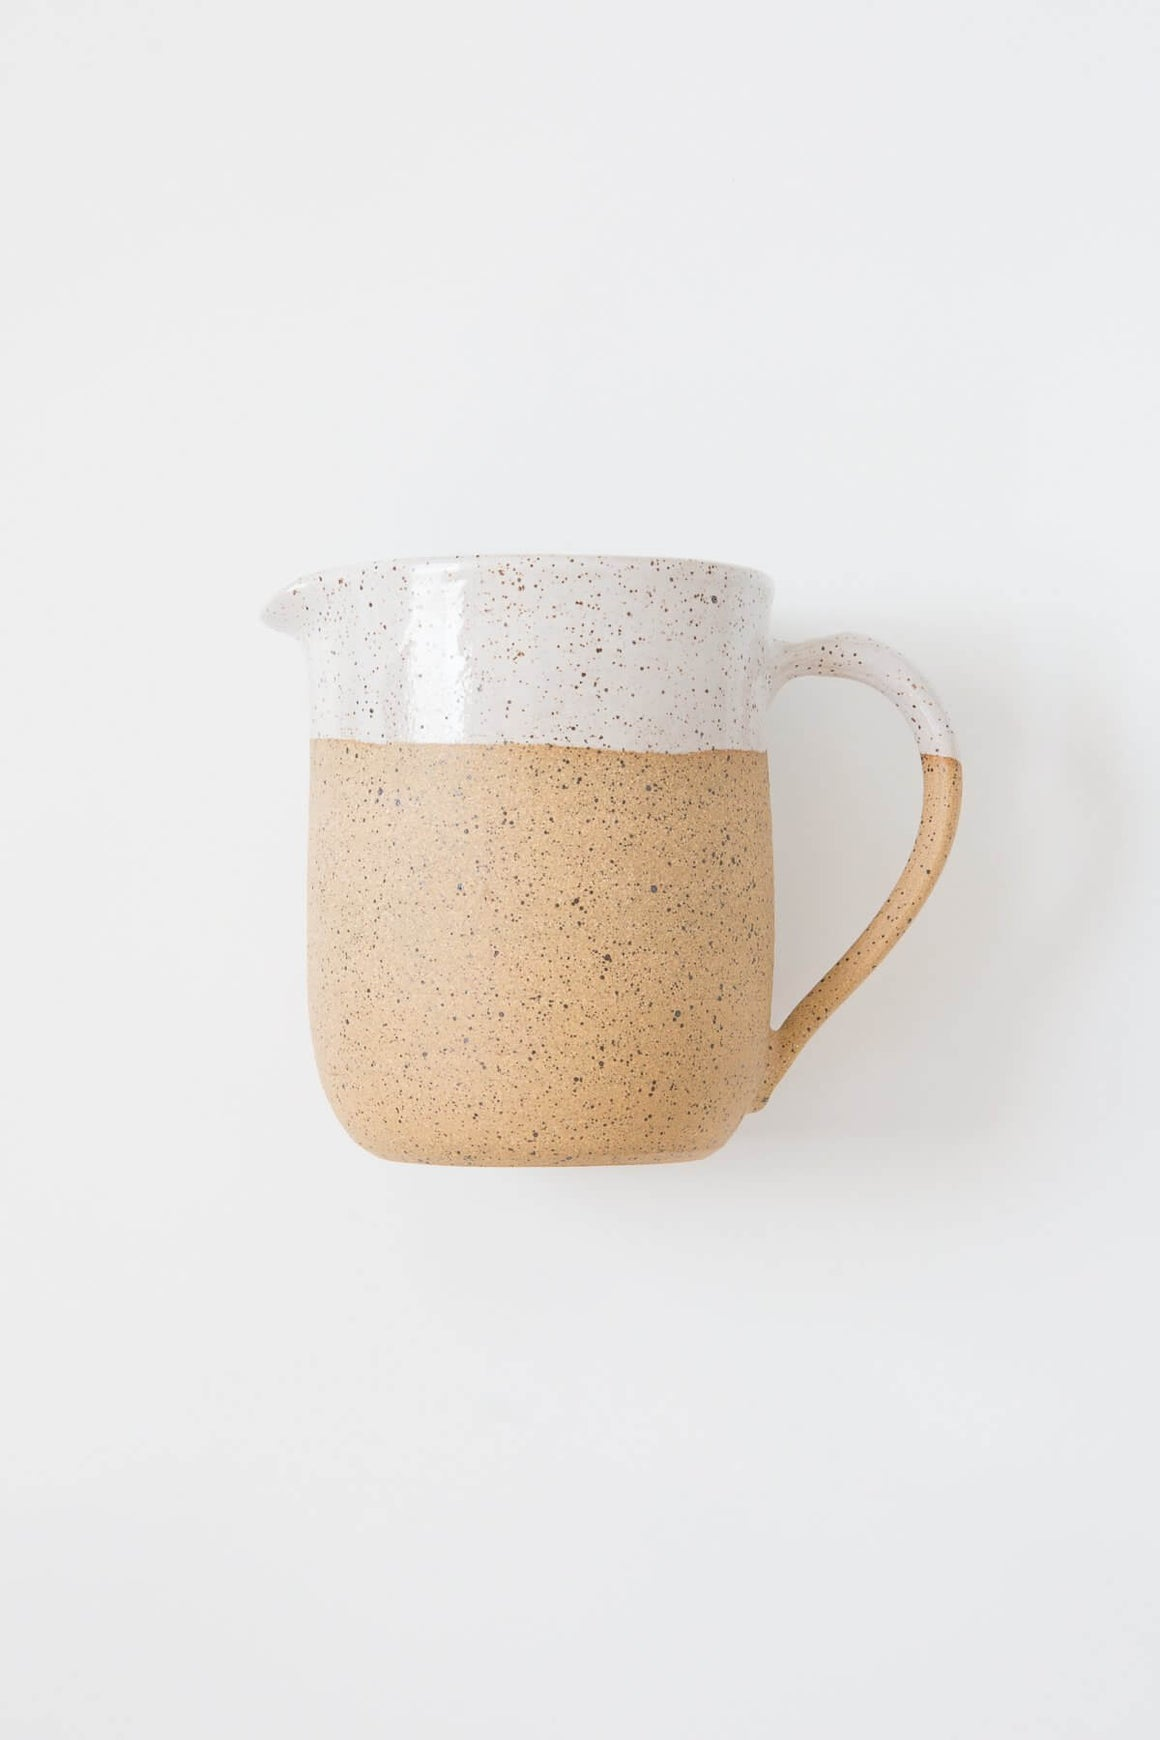 Rachael Pots Small Speckled Pitcher